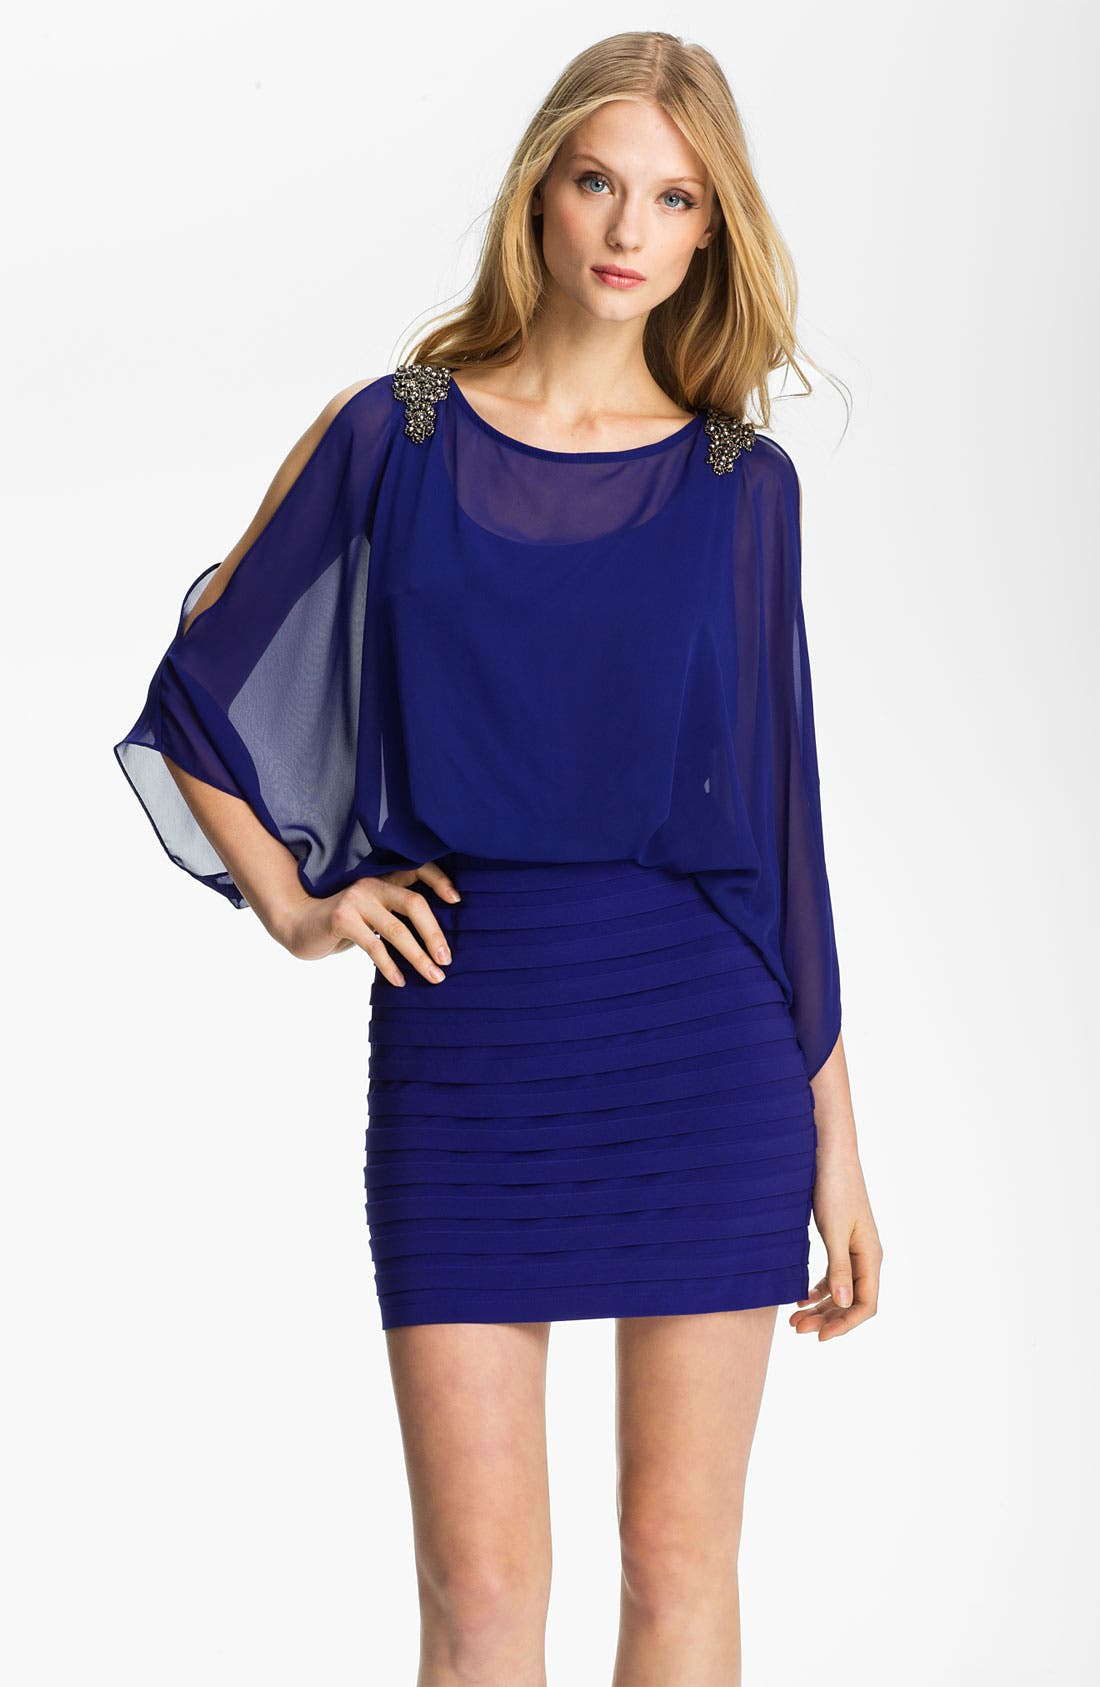 Alternate Image 1 Selected - Xscape Embellished Shoulder Chiffon & Jersey Blouson Dress